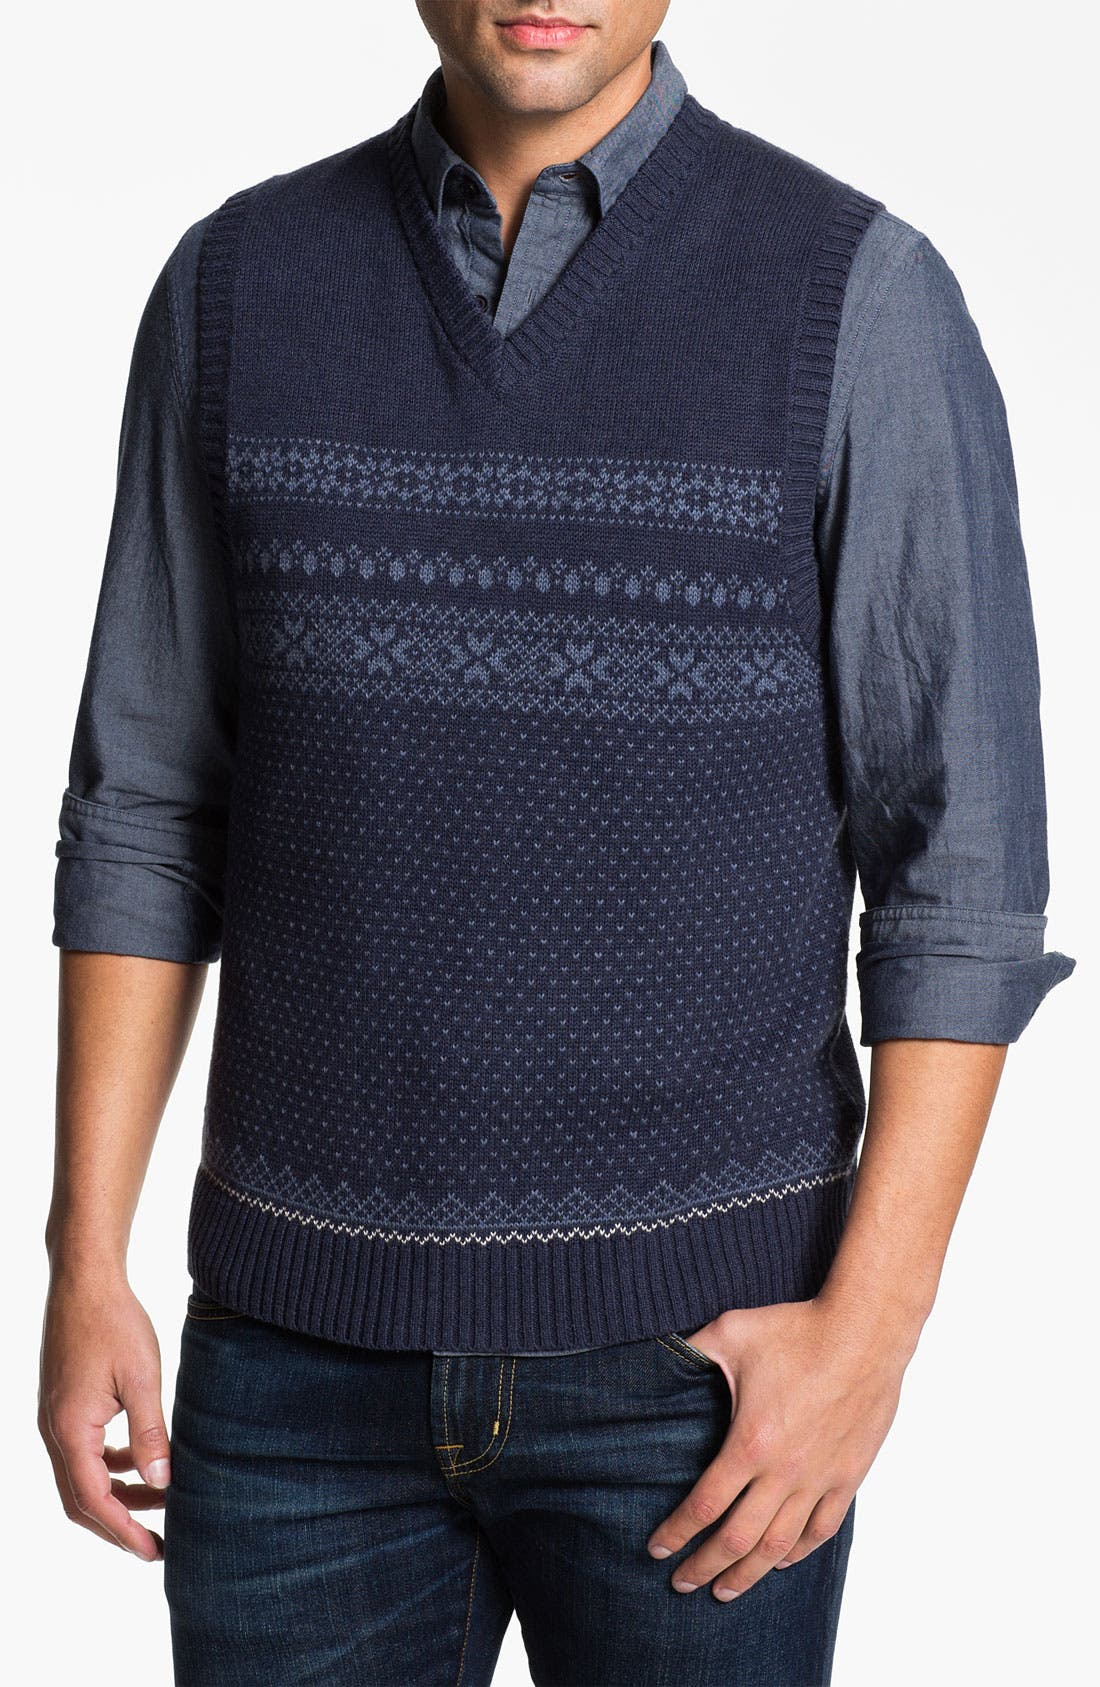 Main Image - Wallin & Bros. Fair Isle V-Neck Sweater Vest